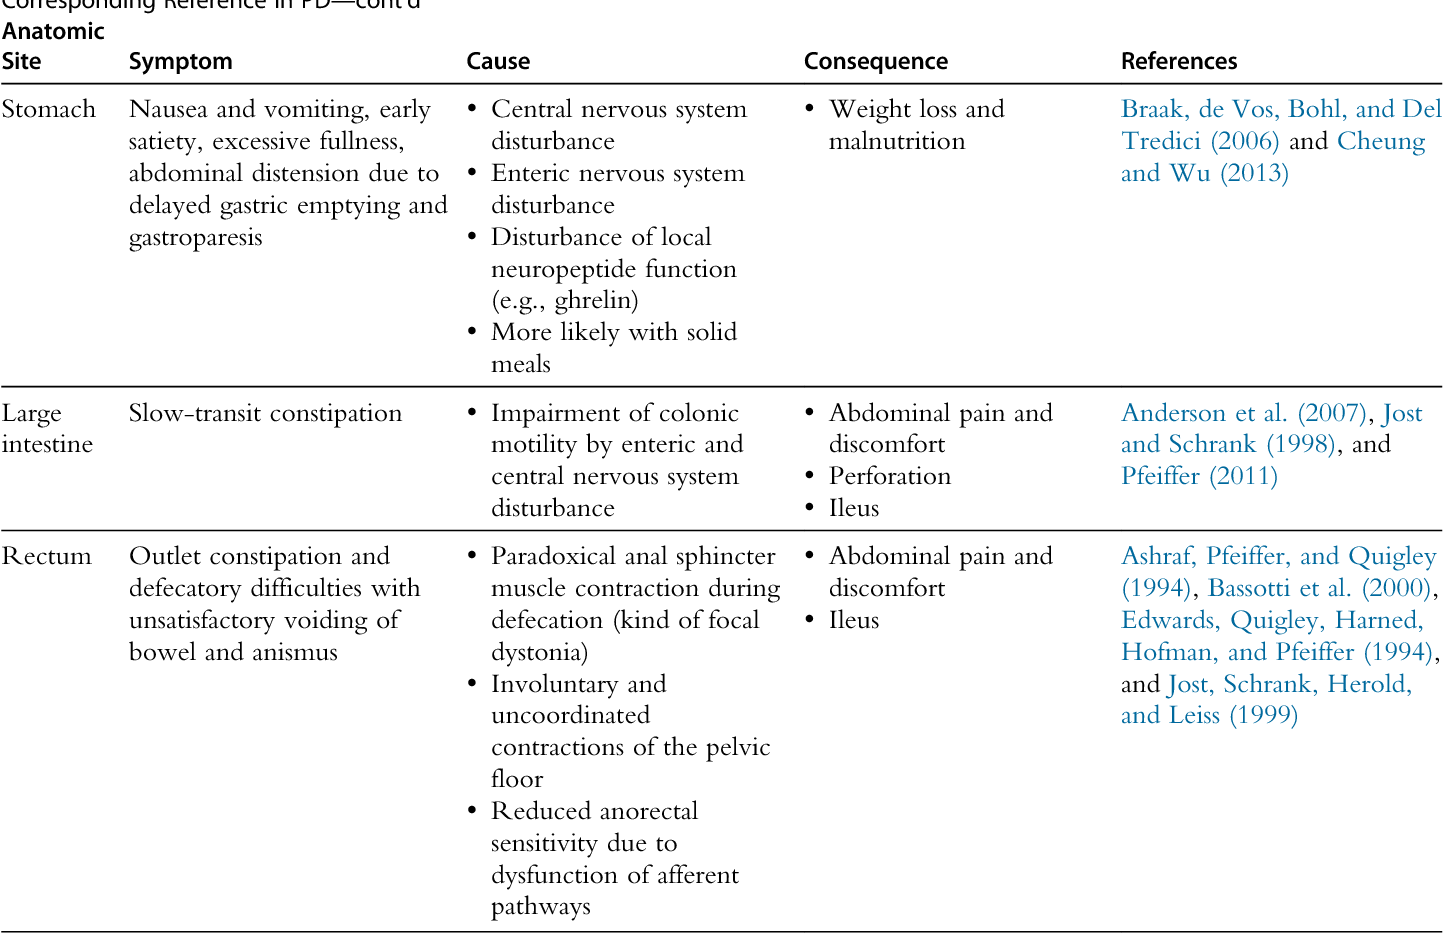 Table 1 from The Gut and Nonmotor Symptoms in Parkinson's